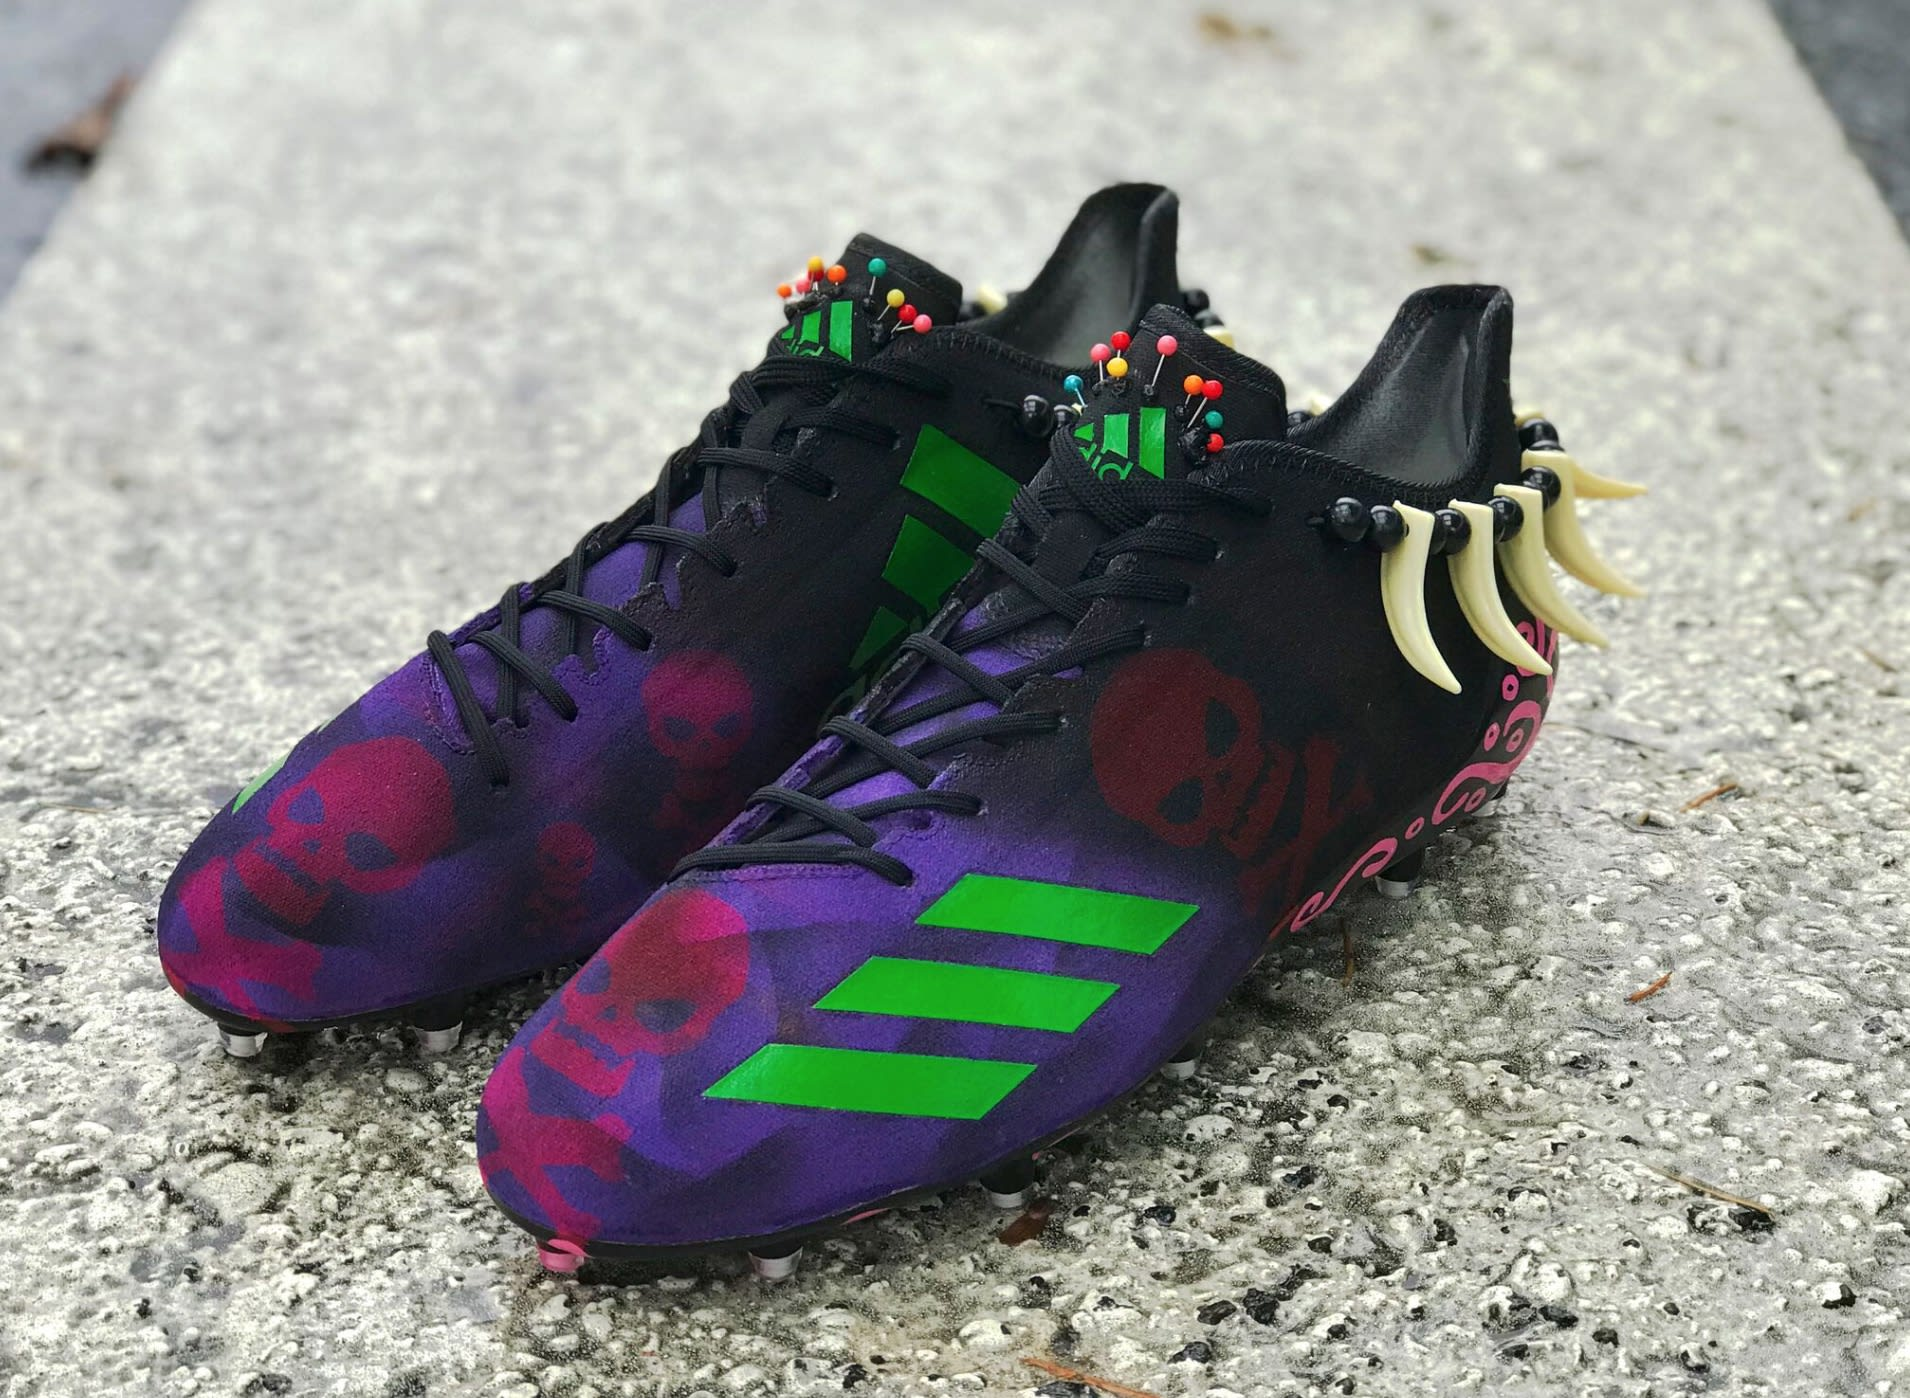 Week 7 Adidas Custom Football Cleats for Von Miller 41b3c1f2b